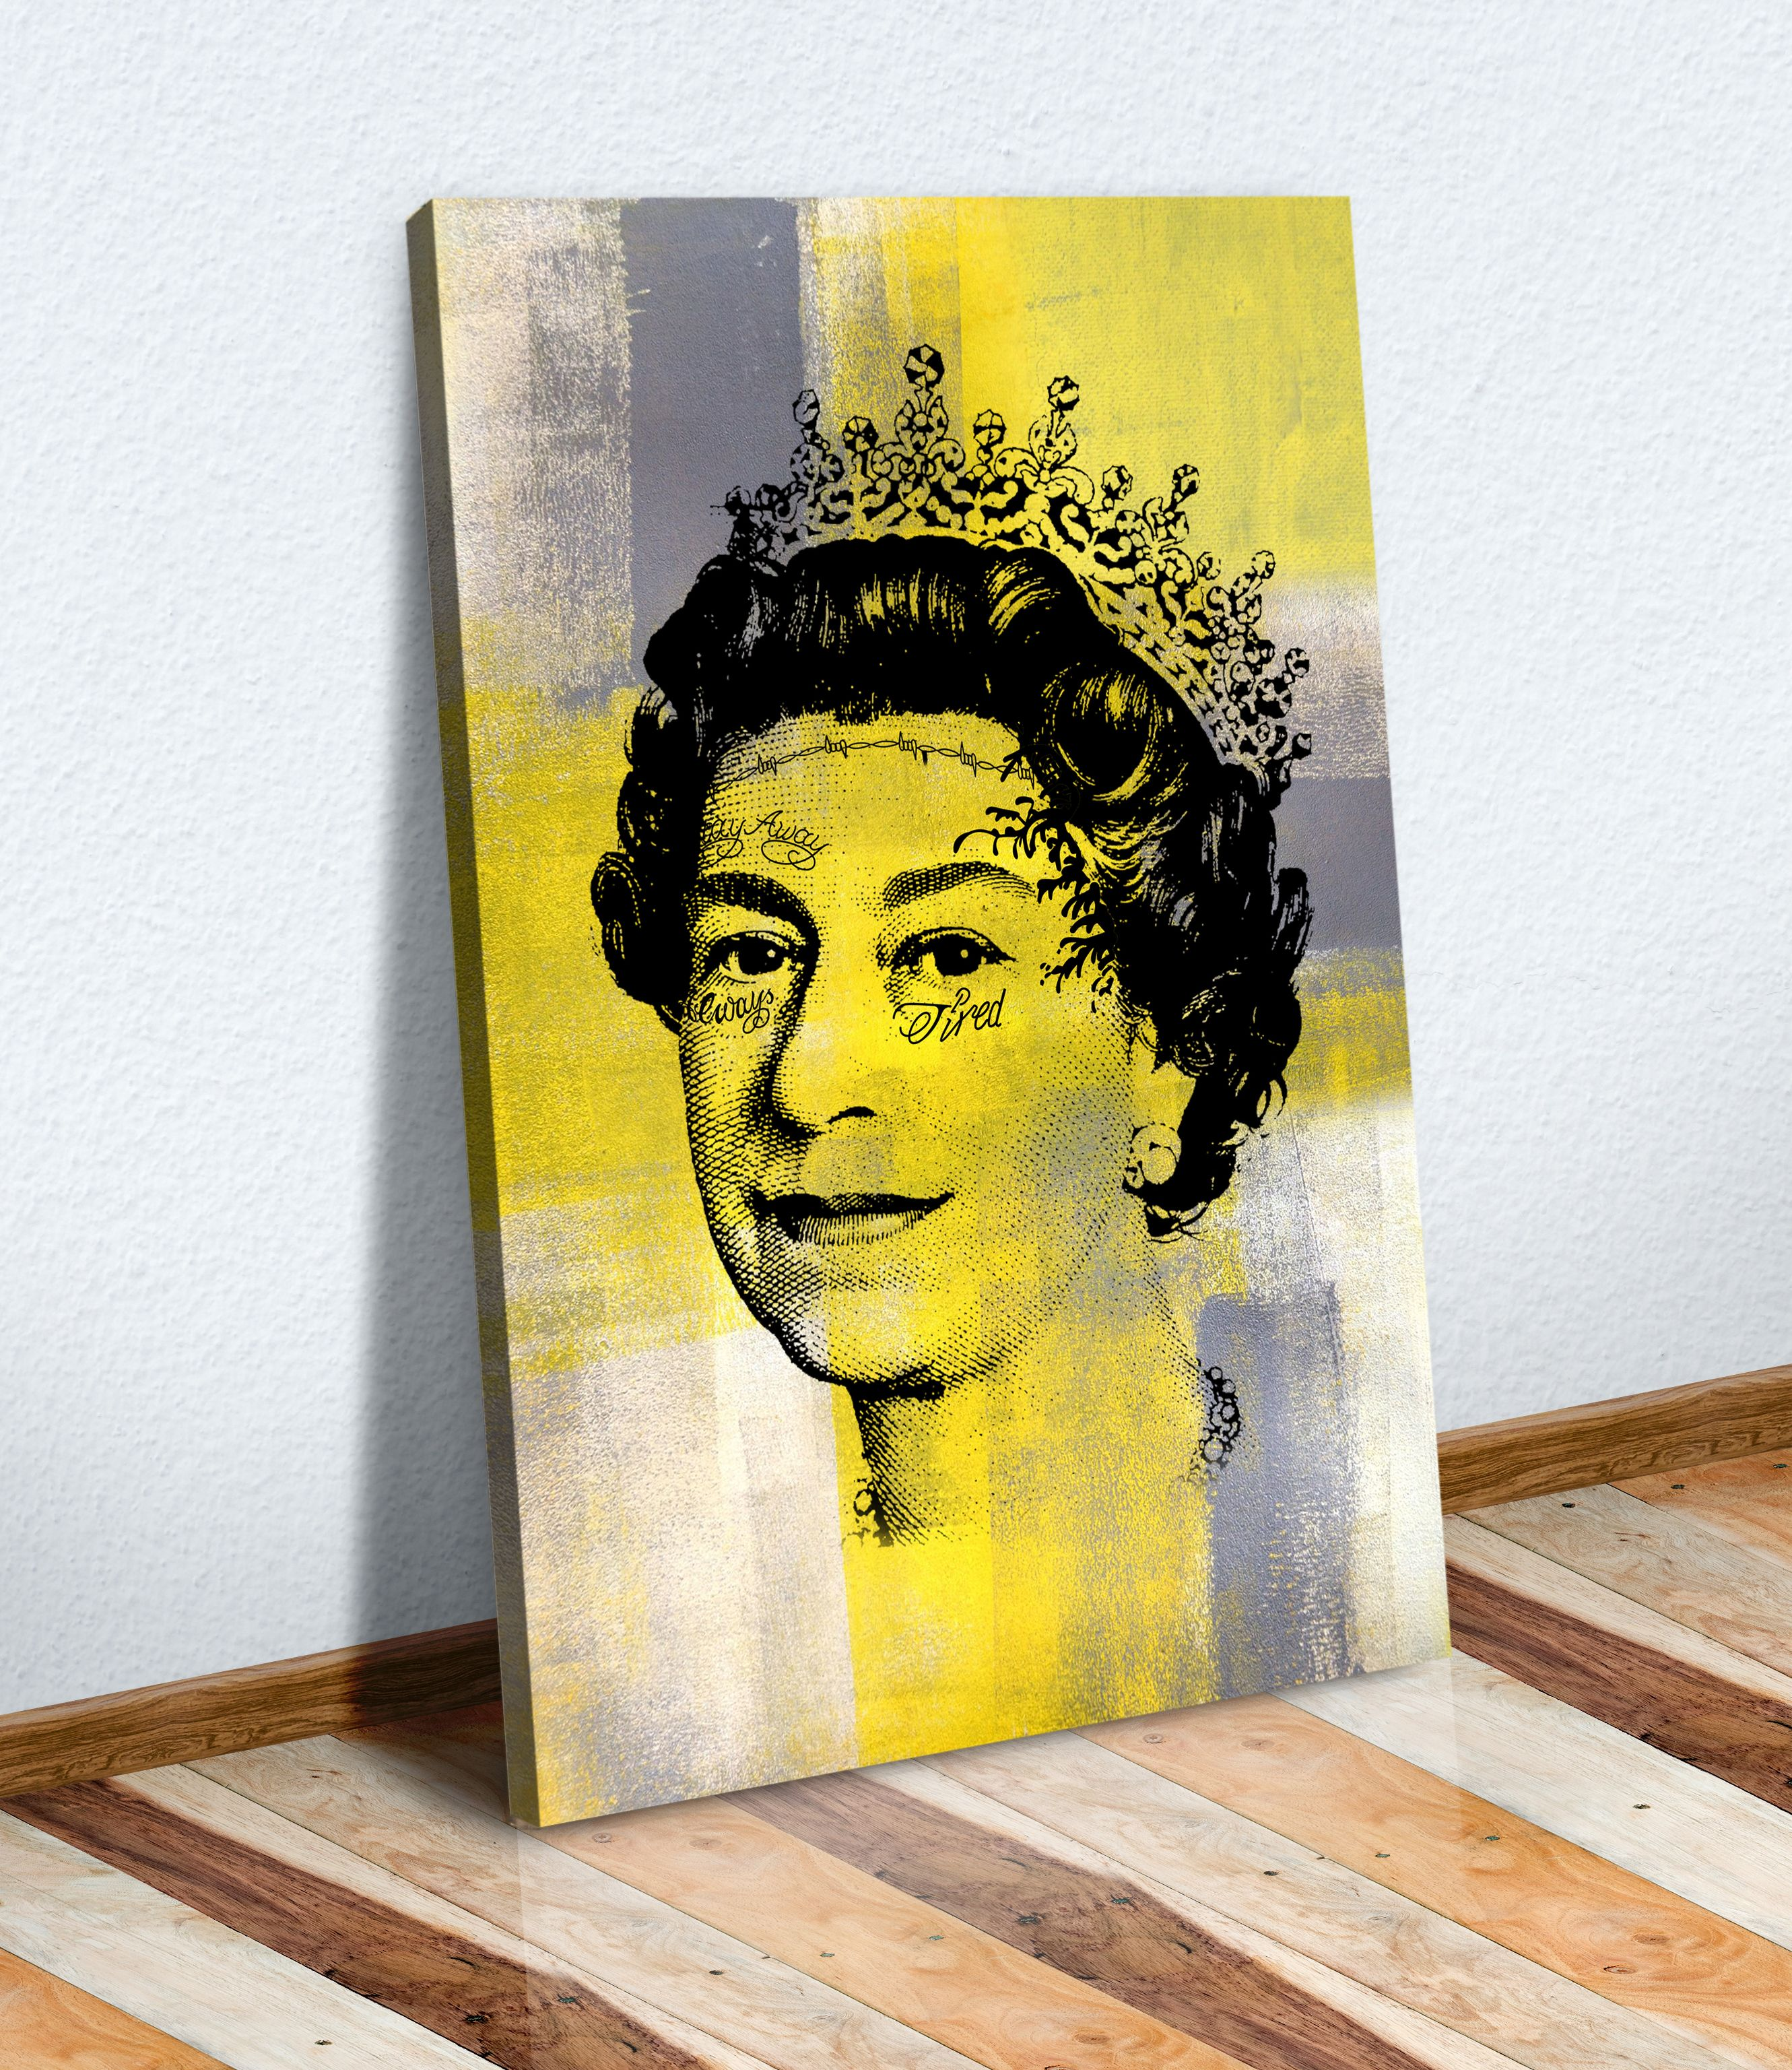 Post malone queen tattoo yellow mustard grey canvas wall